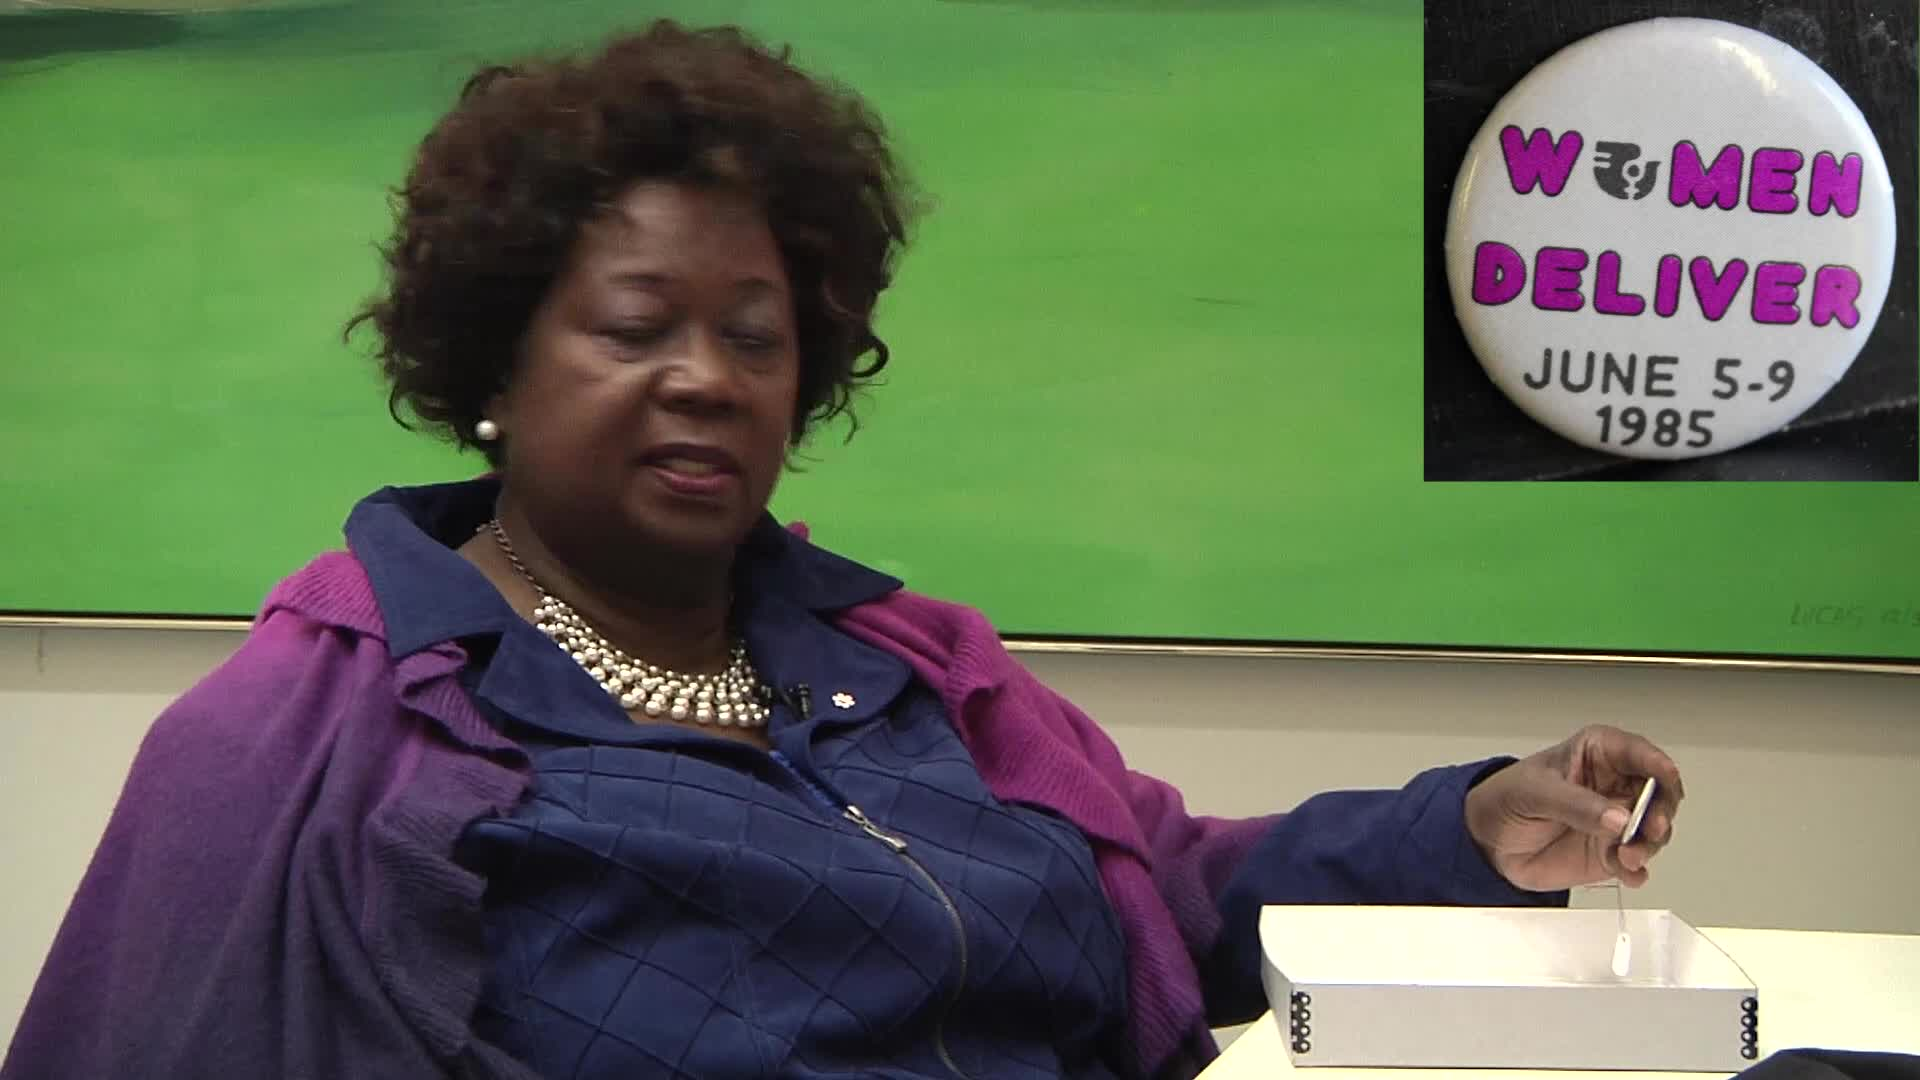 Jean Augustine interview: Women deliver button